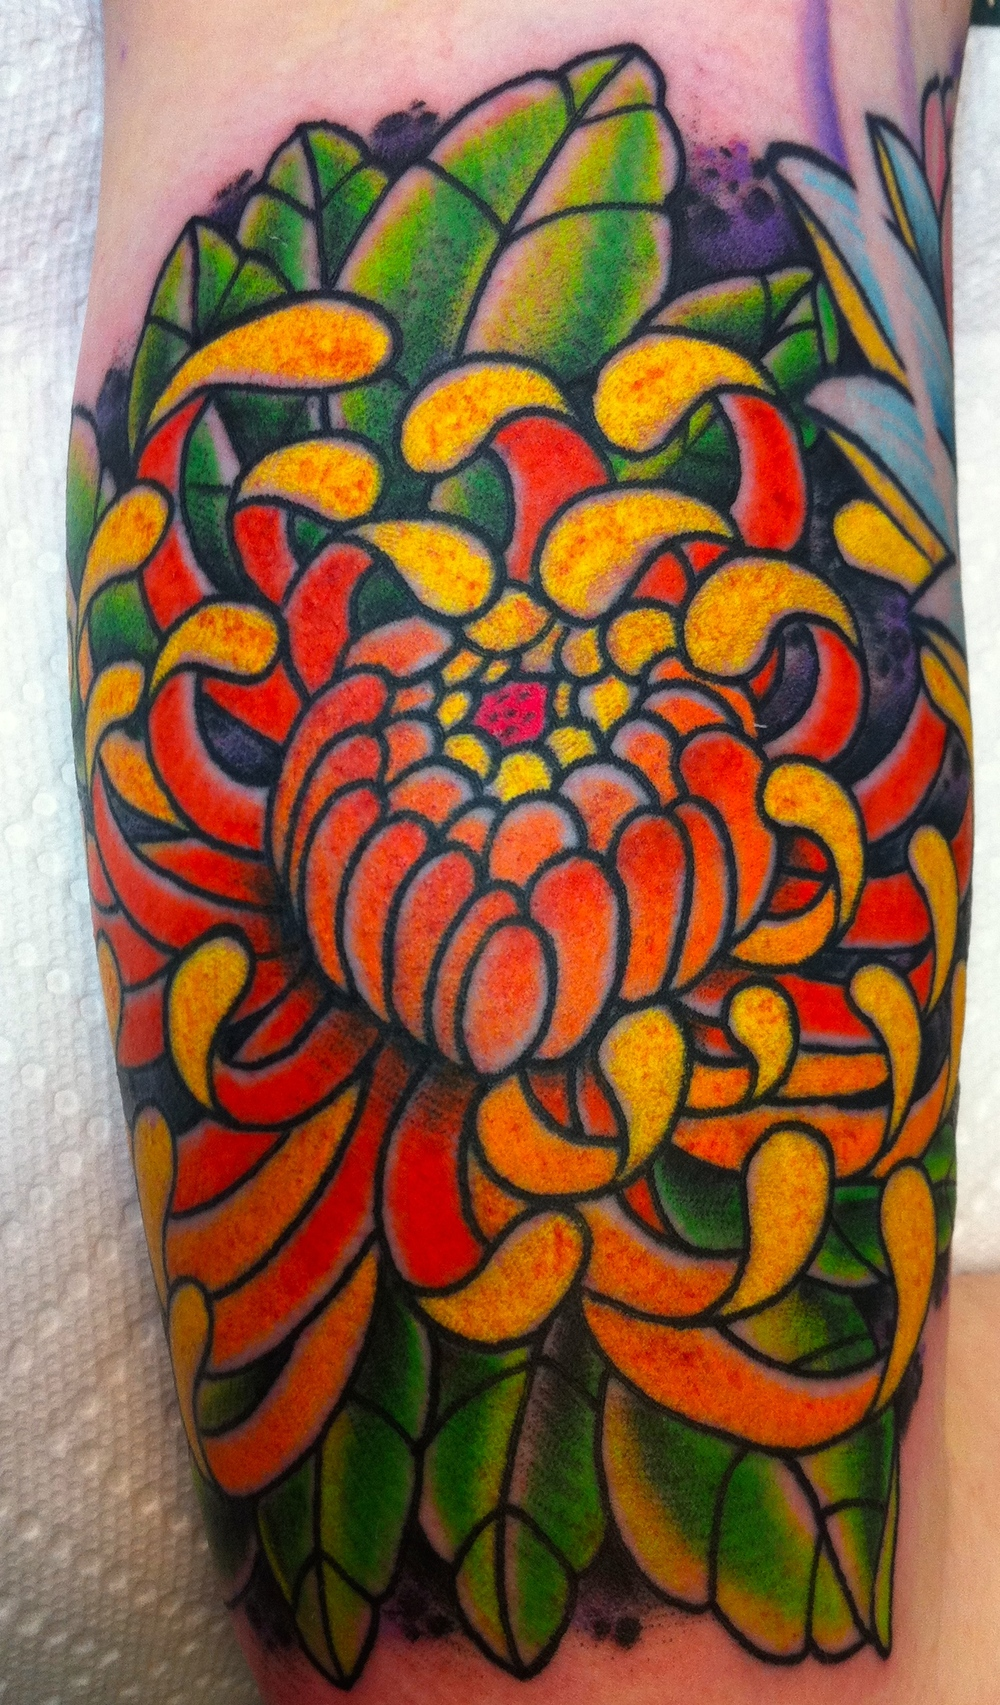 Jae portfolio electric lotus tattoo flower tattoos bright color tattooingnbspelectric lotus tattoo fort greene brooklyn new izmirmasajfo